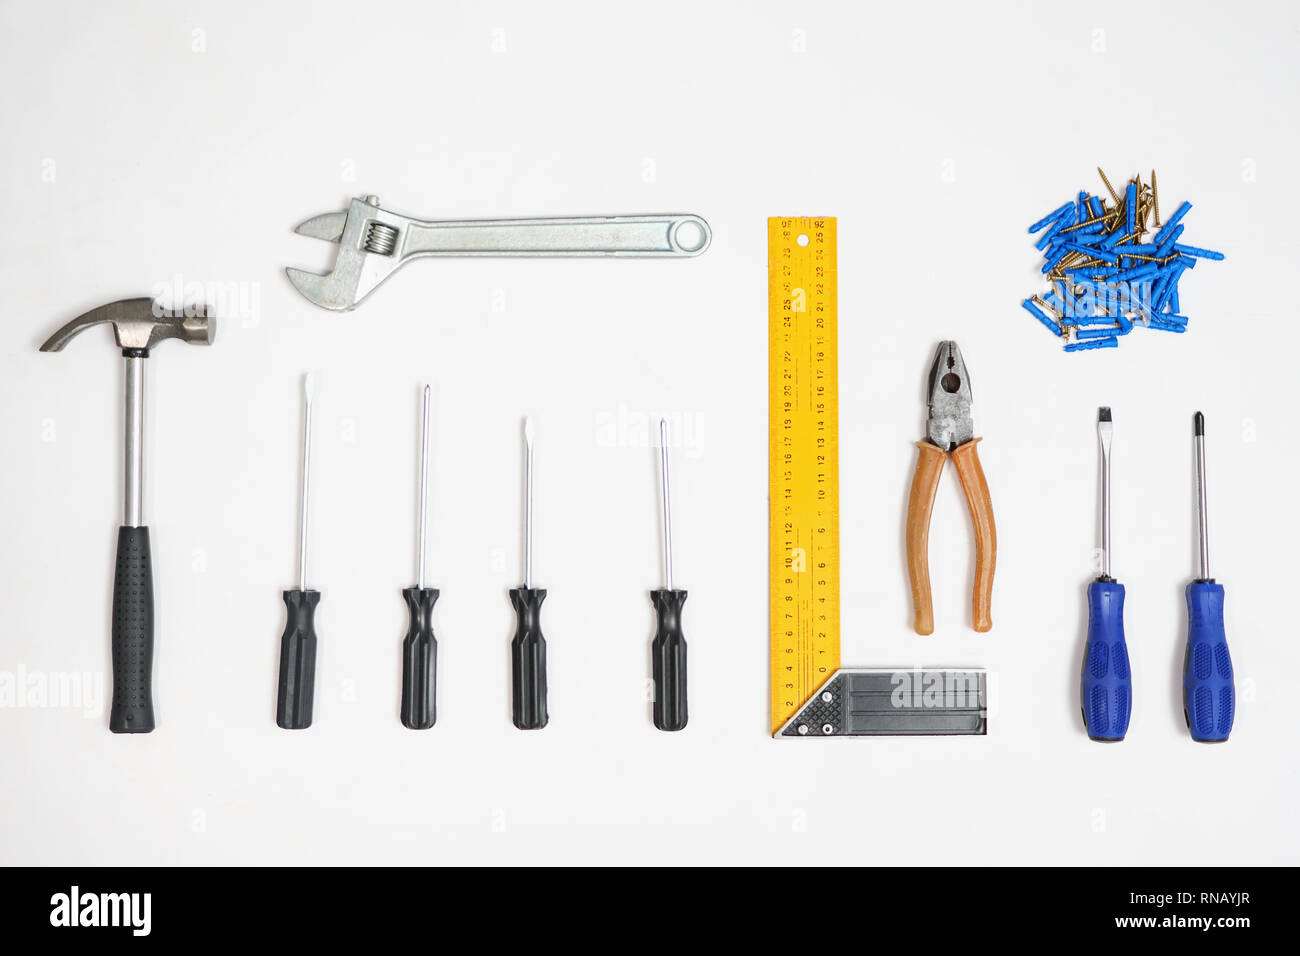 Tools and nails in composition on white background - Stock Image